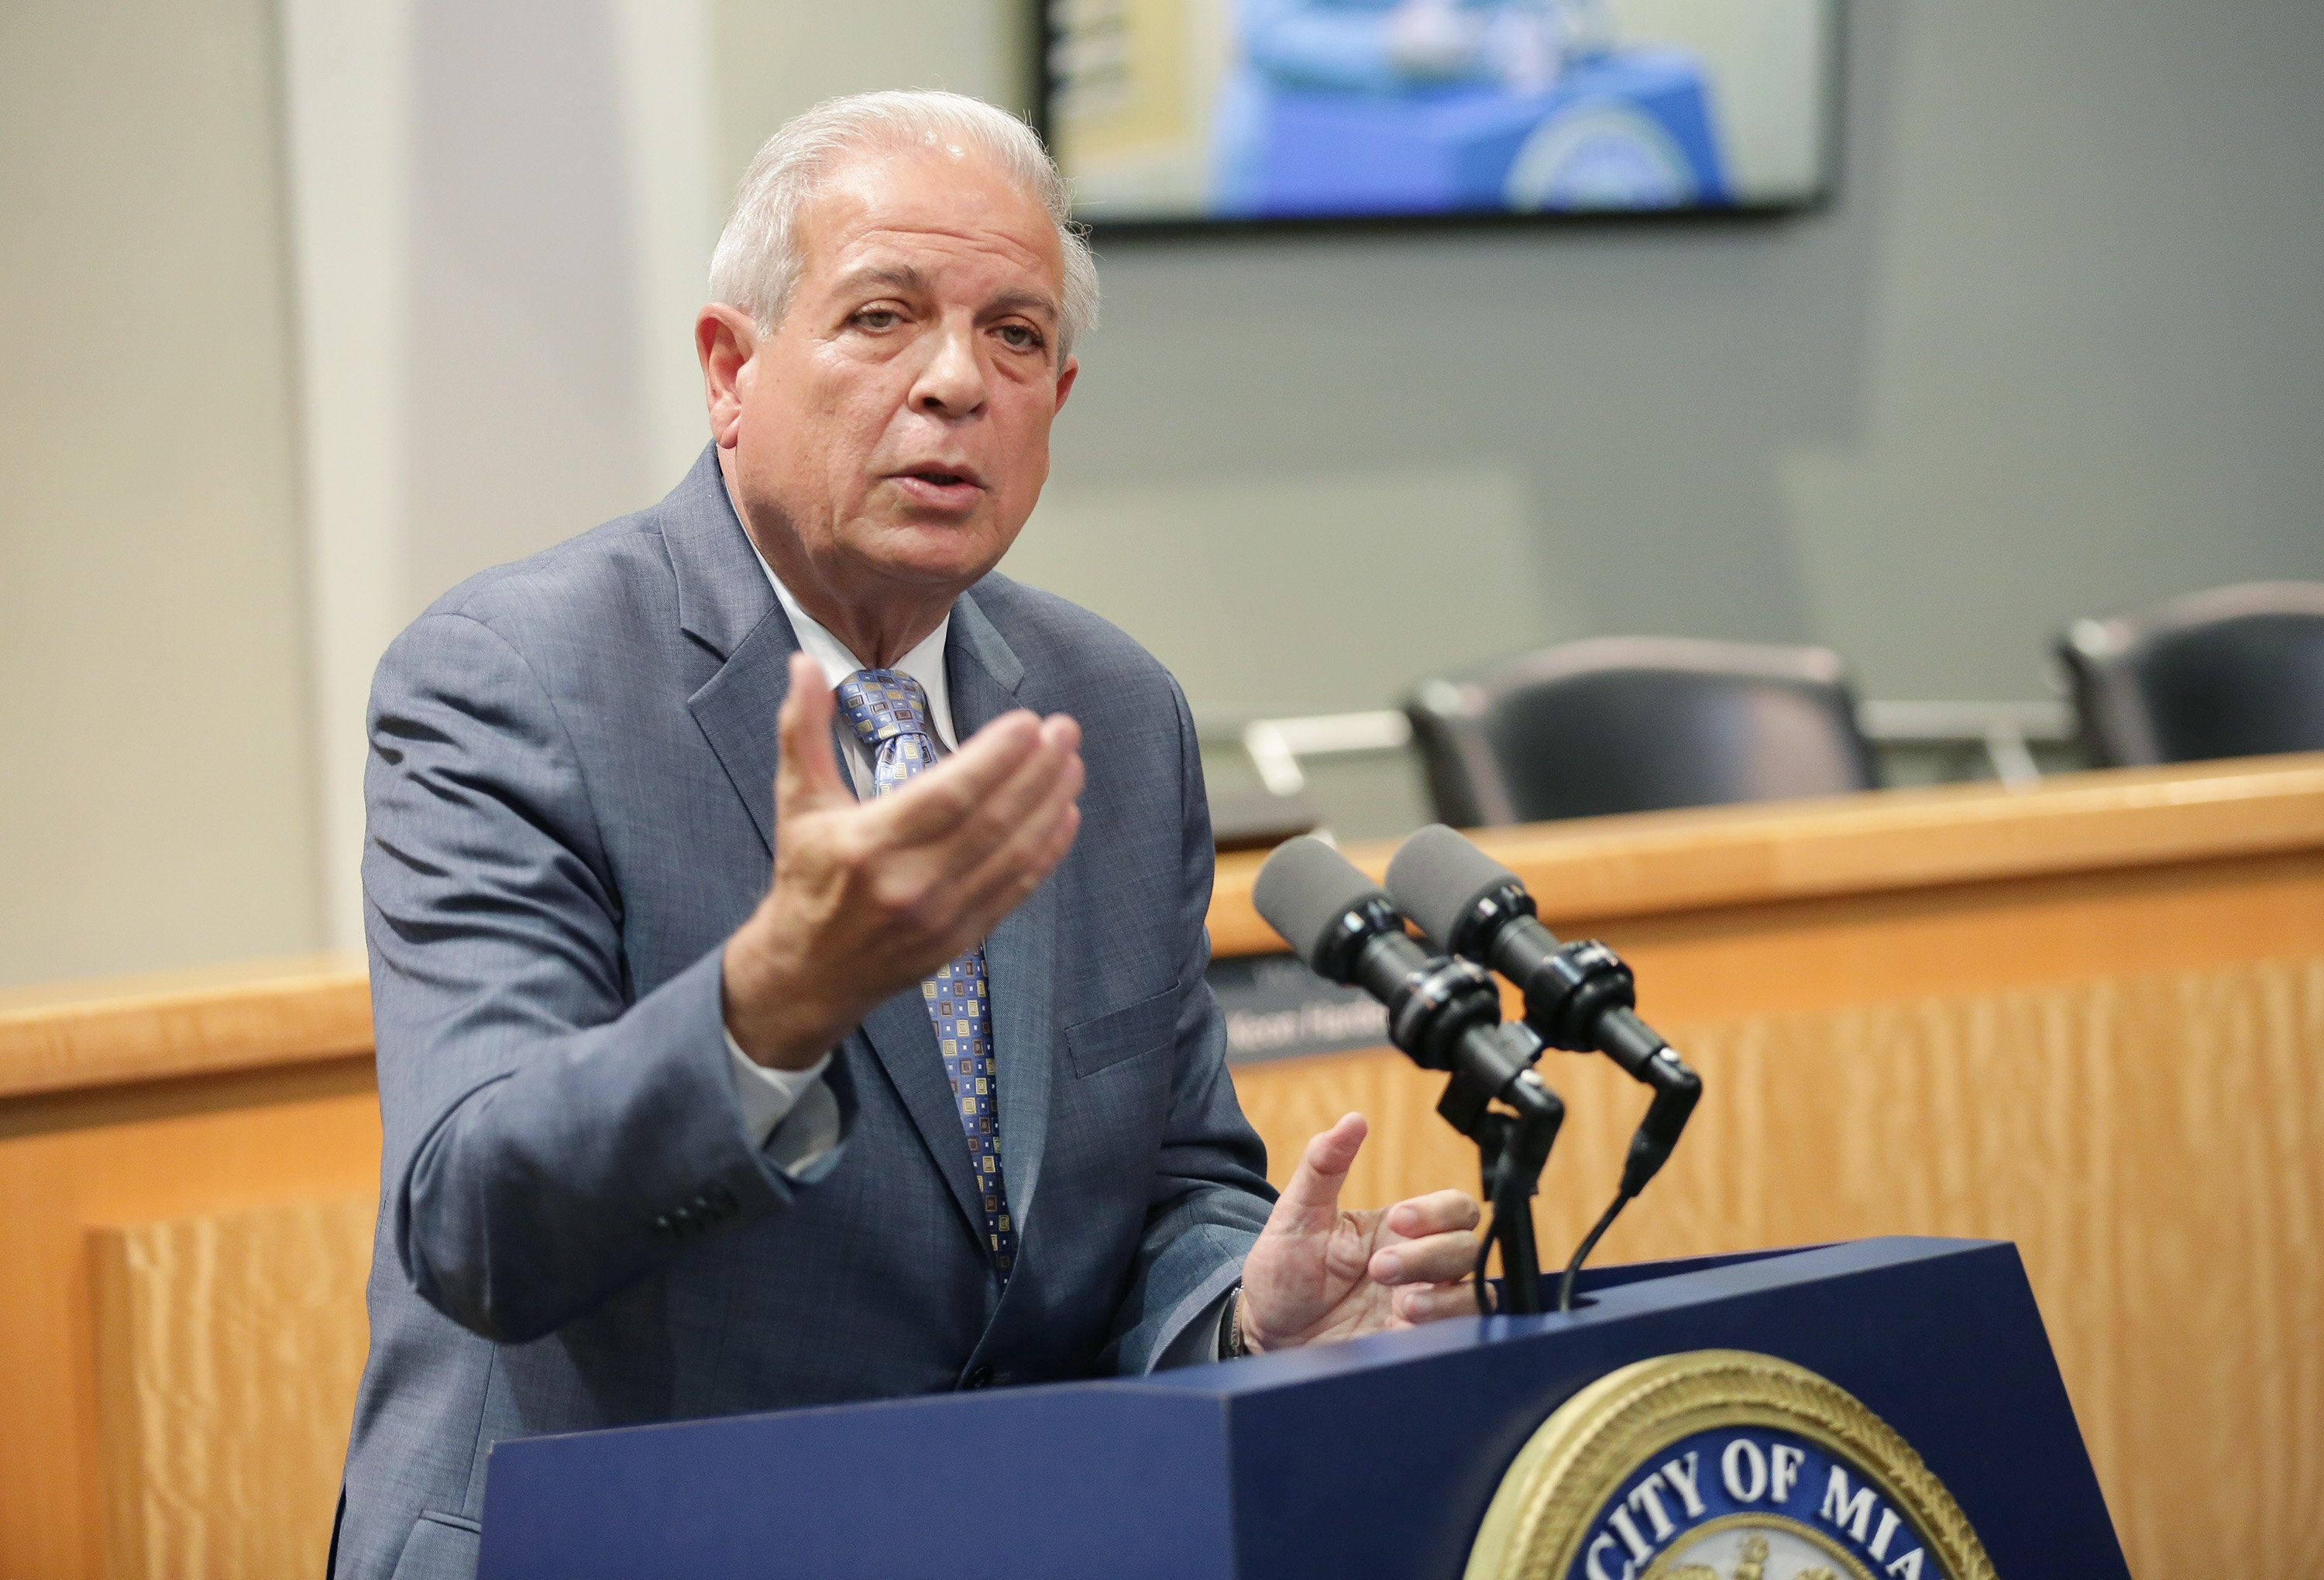 MIAMI, FL - OCTOBER 06: Tomas Regalado is seen at Miami City Hall where he presented William Levy the key to the City of Miami from Mayor Tomas Regalado on October 6, 2014 in Miami, Florida. (Photo by Alexander Tamargo/Getty Images)